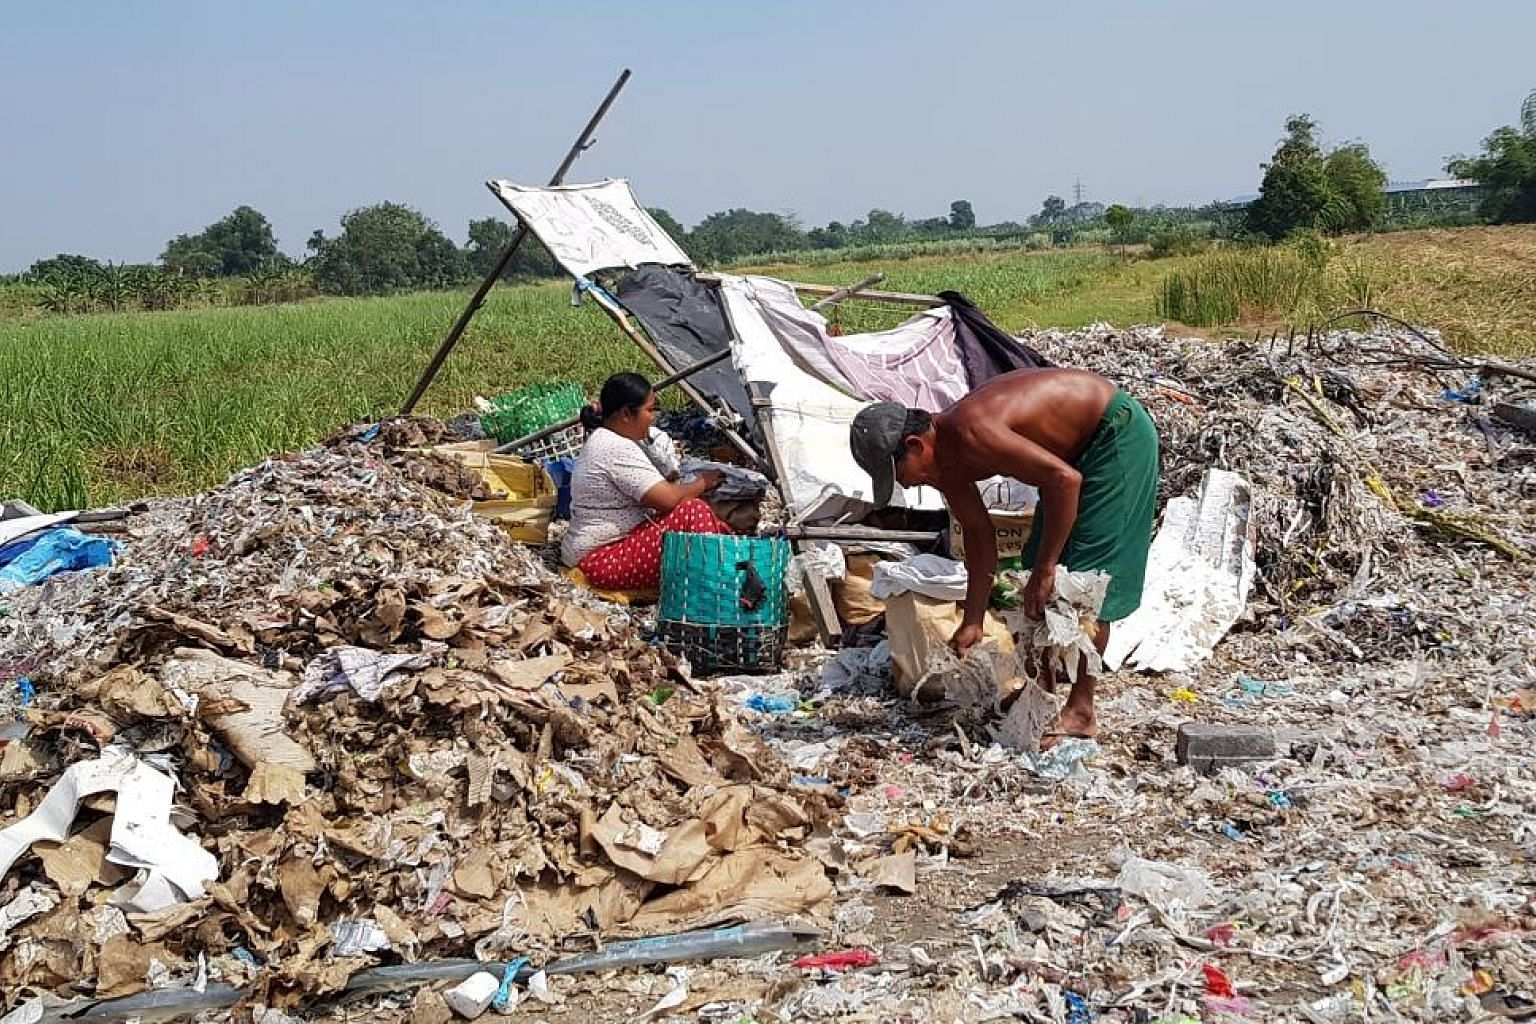 Left: Waste-picker Suparah of Sumengko village in Gresik, East Java, showing trash from a nearby paper factory. She earns about 50,000 rupiah (S$4.90) a day sorting garbage provided by her neighbour. Right: Yanti, a resident of Bangun village in Mojo